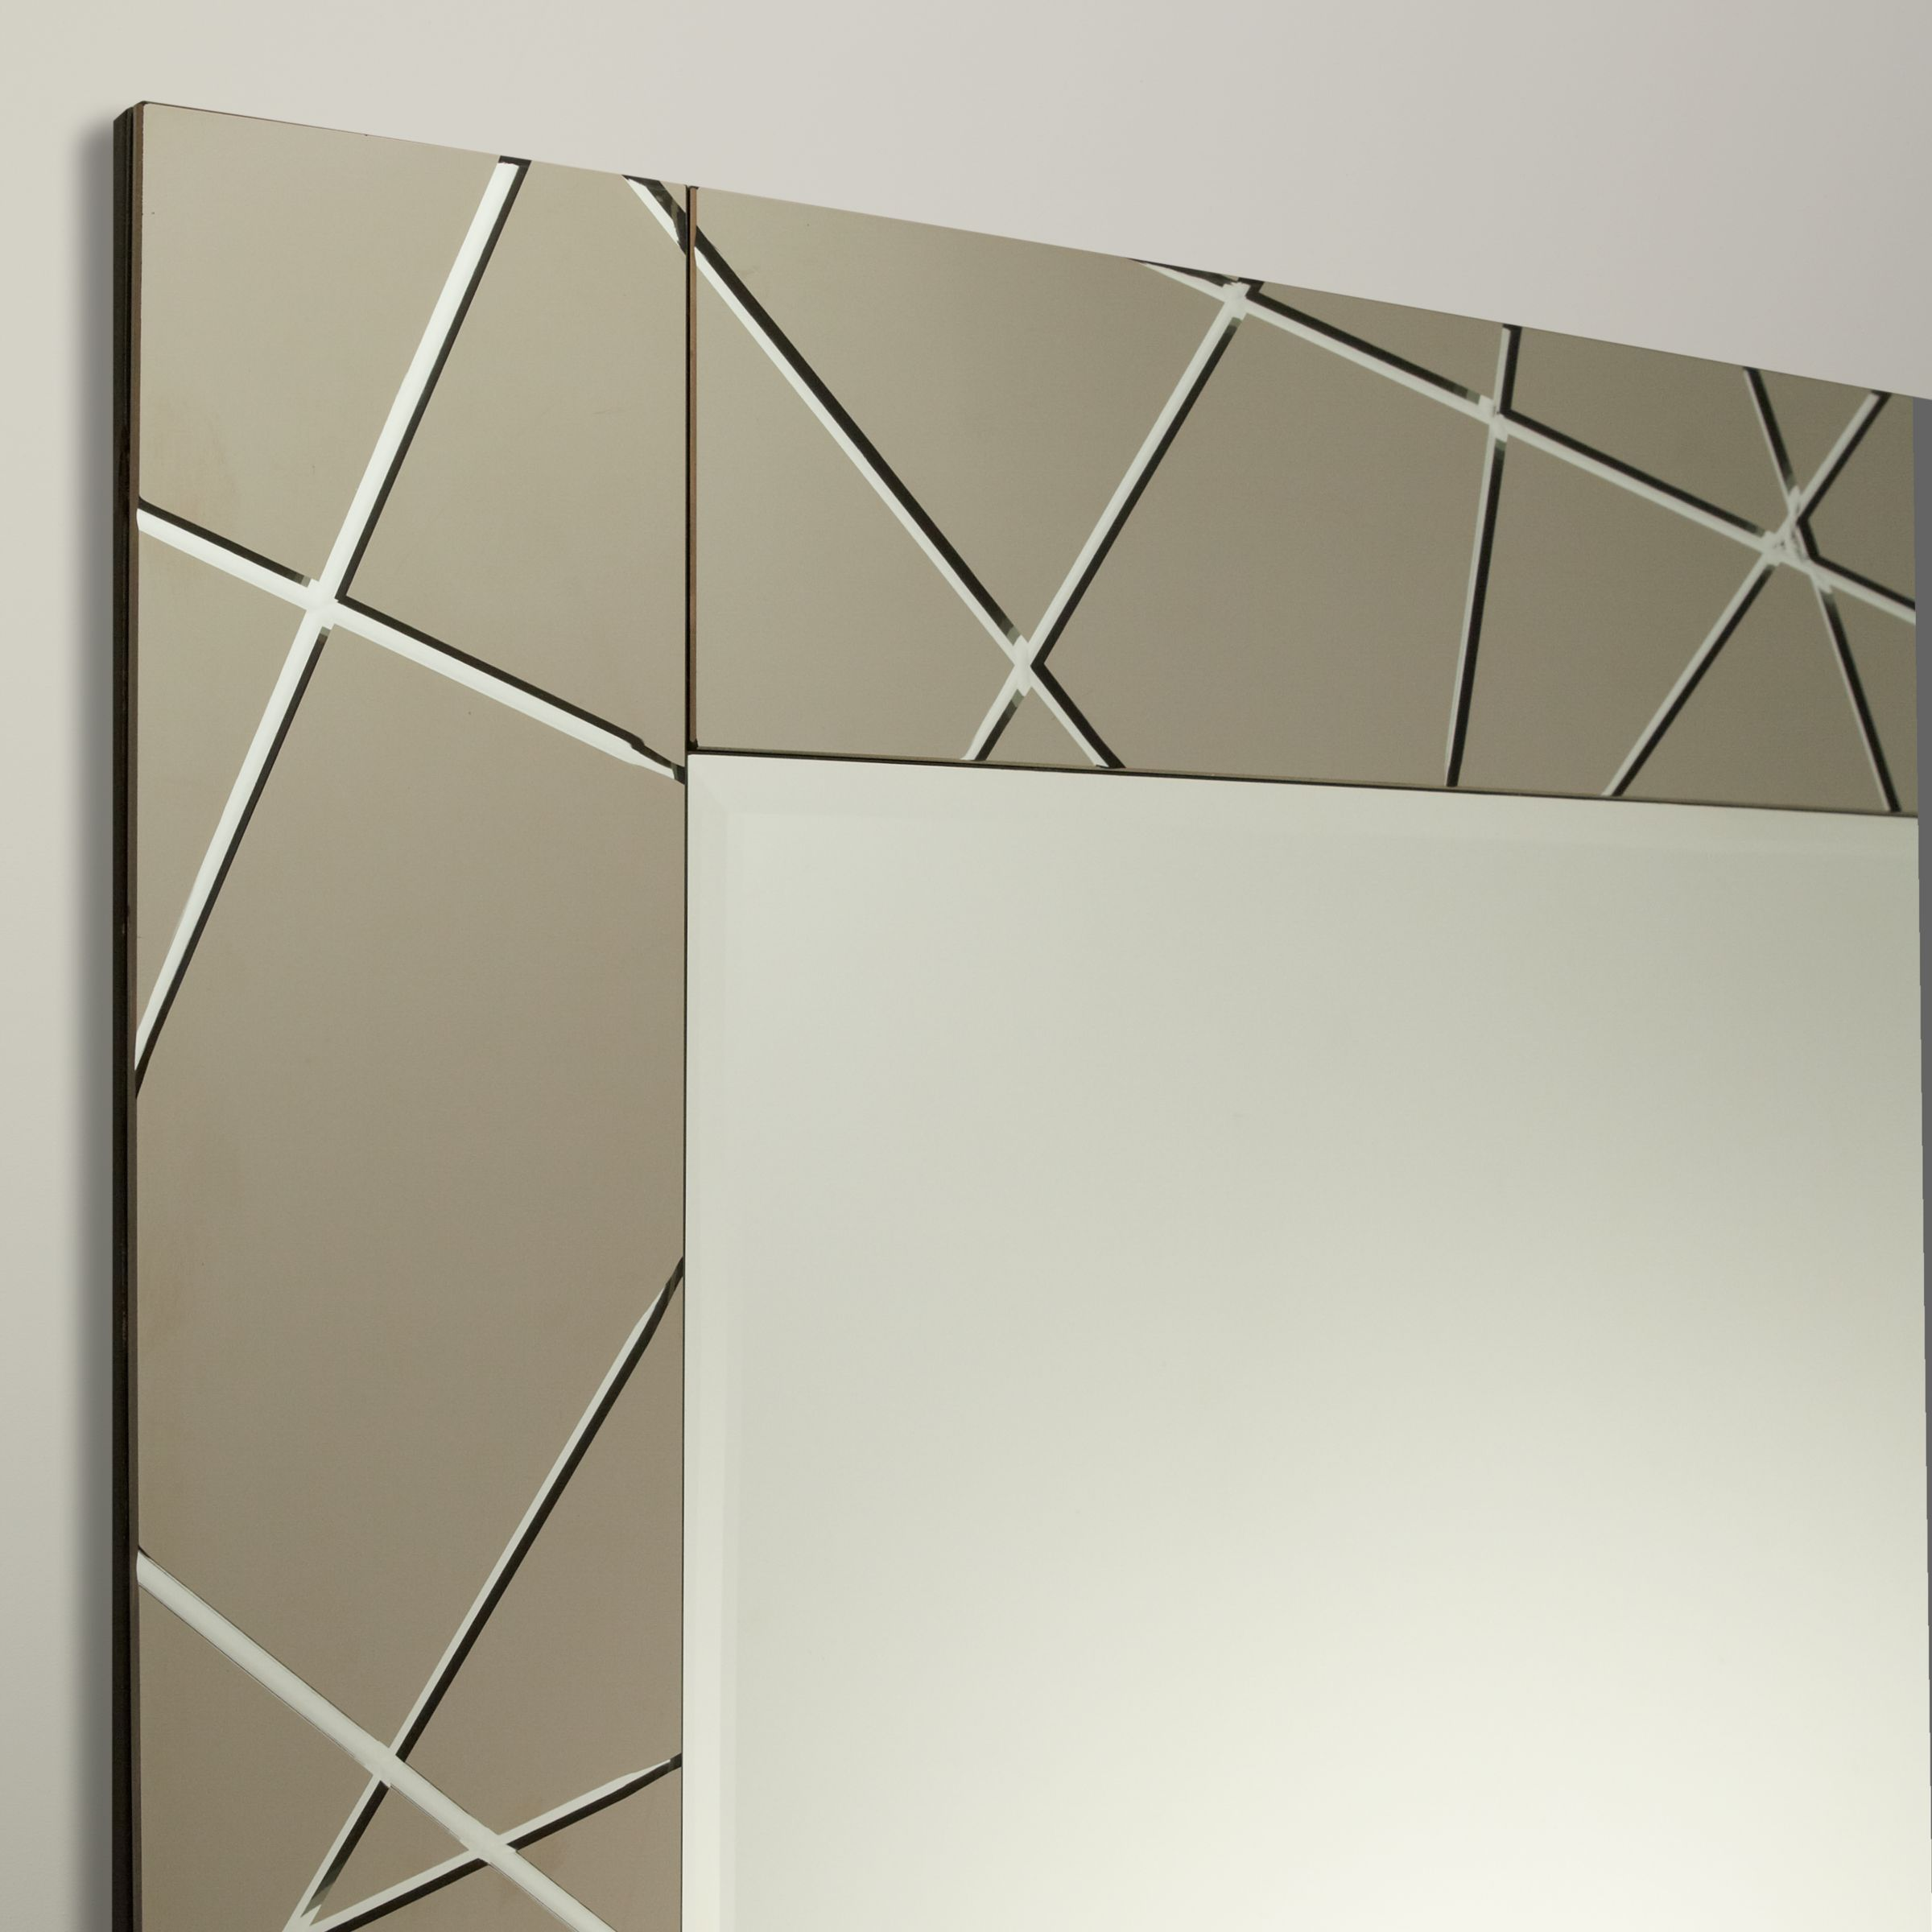 50 Indian Interior Design Ideas: John Lewis & Partners Engraved Mirror, 90 X 60cm, Smoke